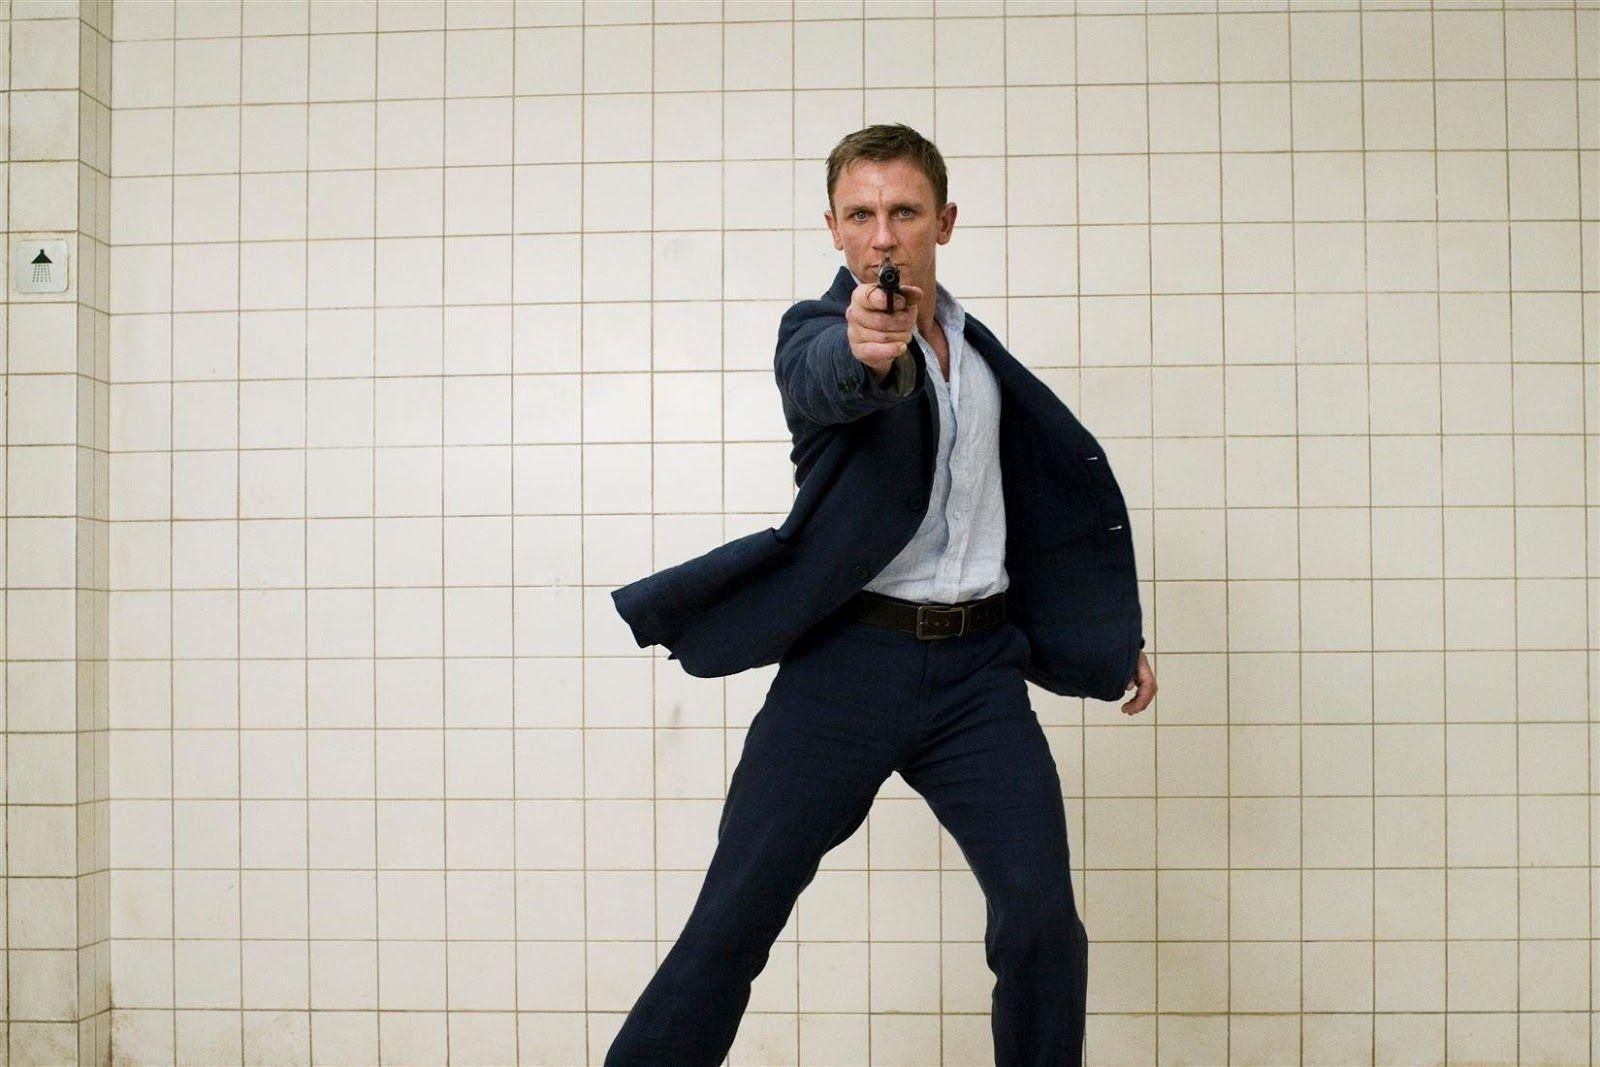 Download This Awesome Wallpaper Wallpaper Cave James Bond